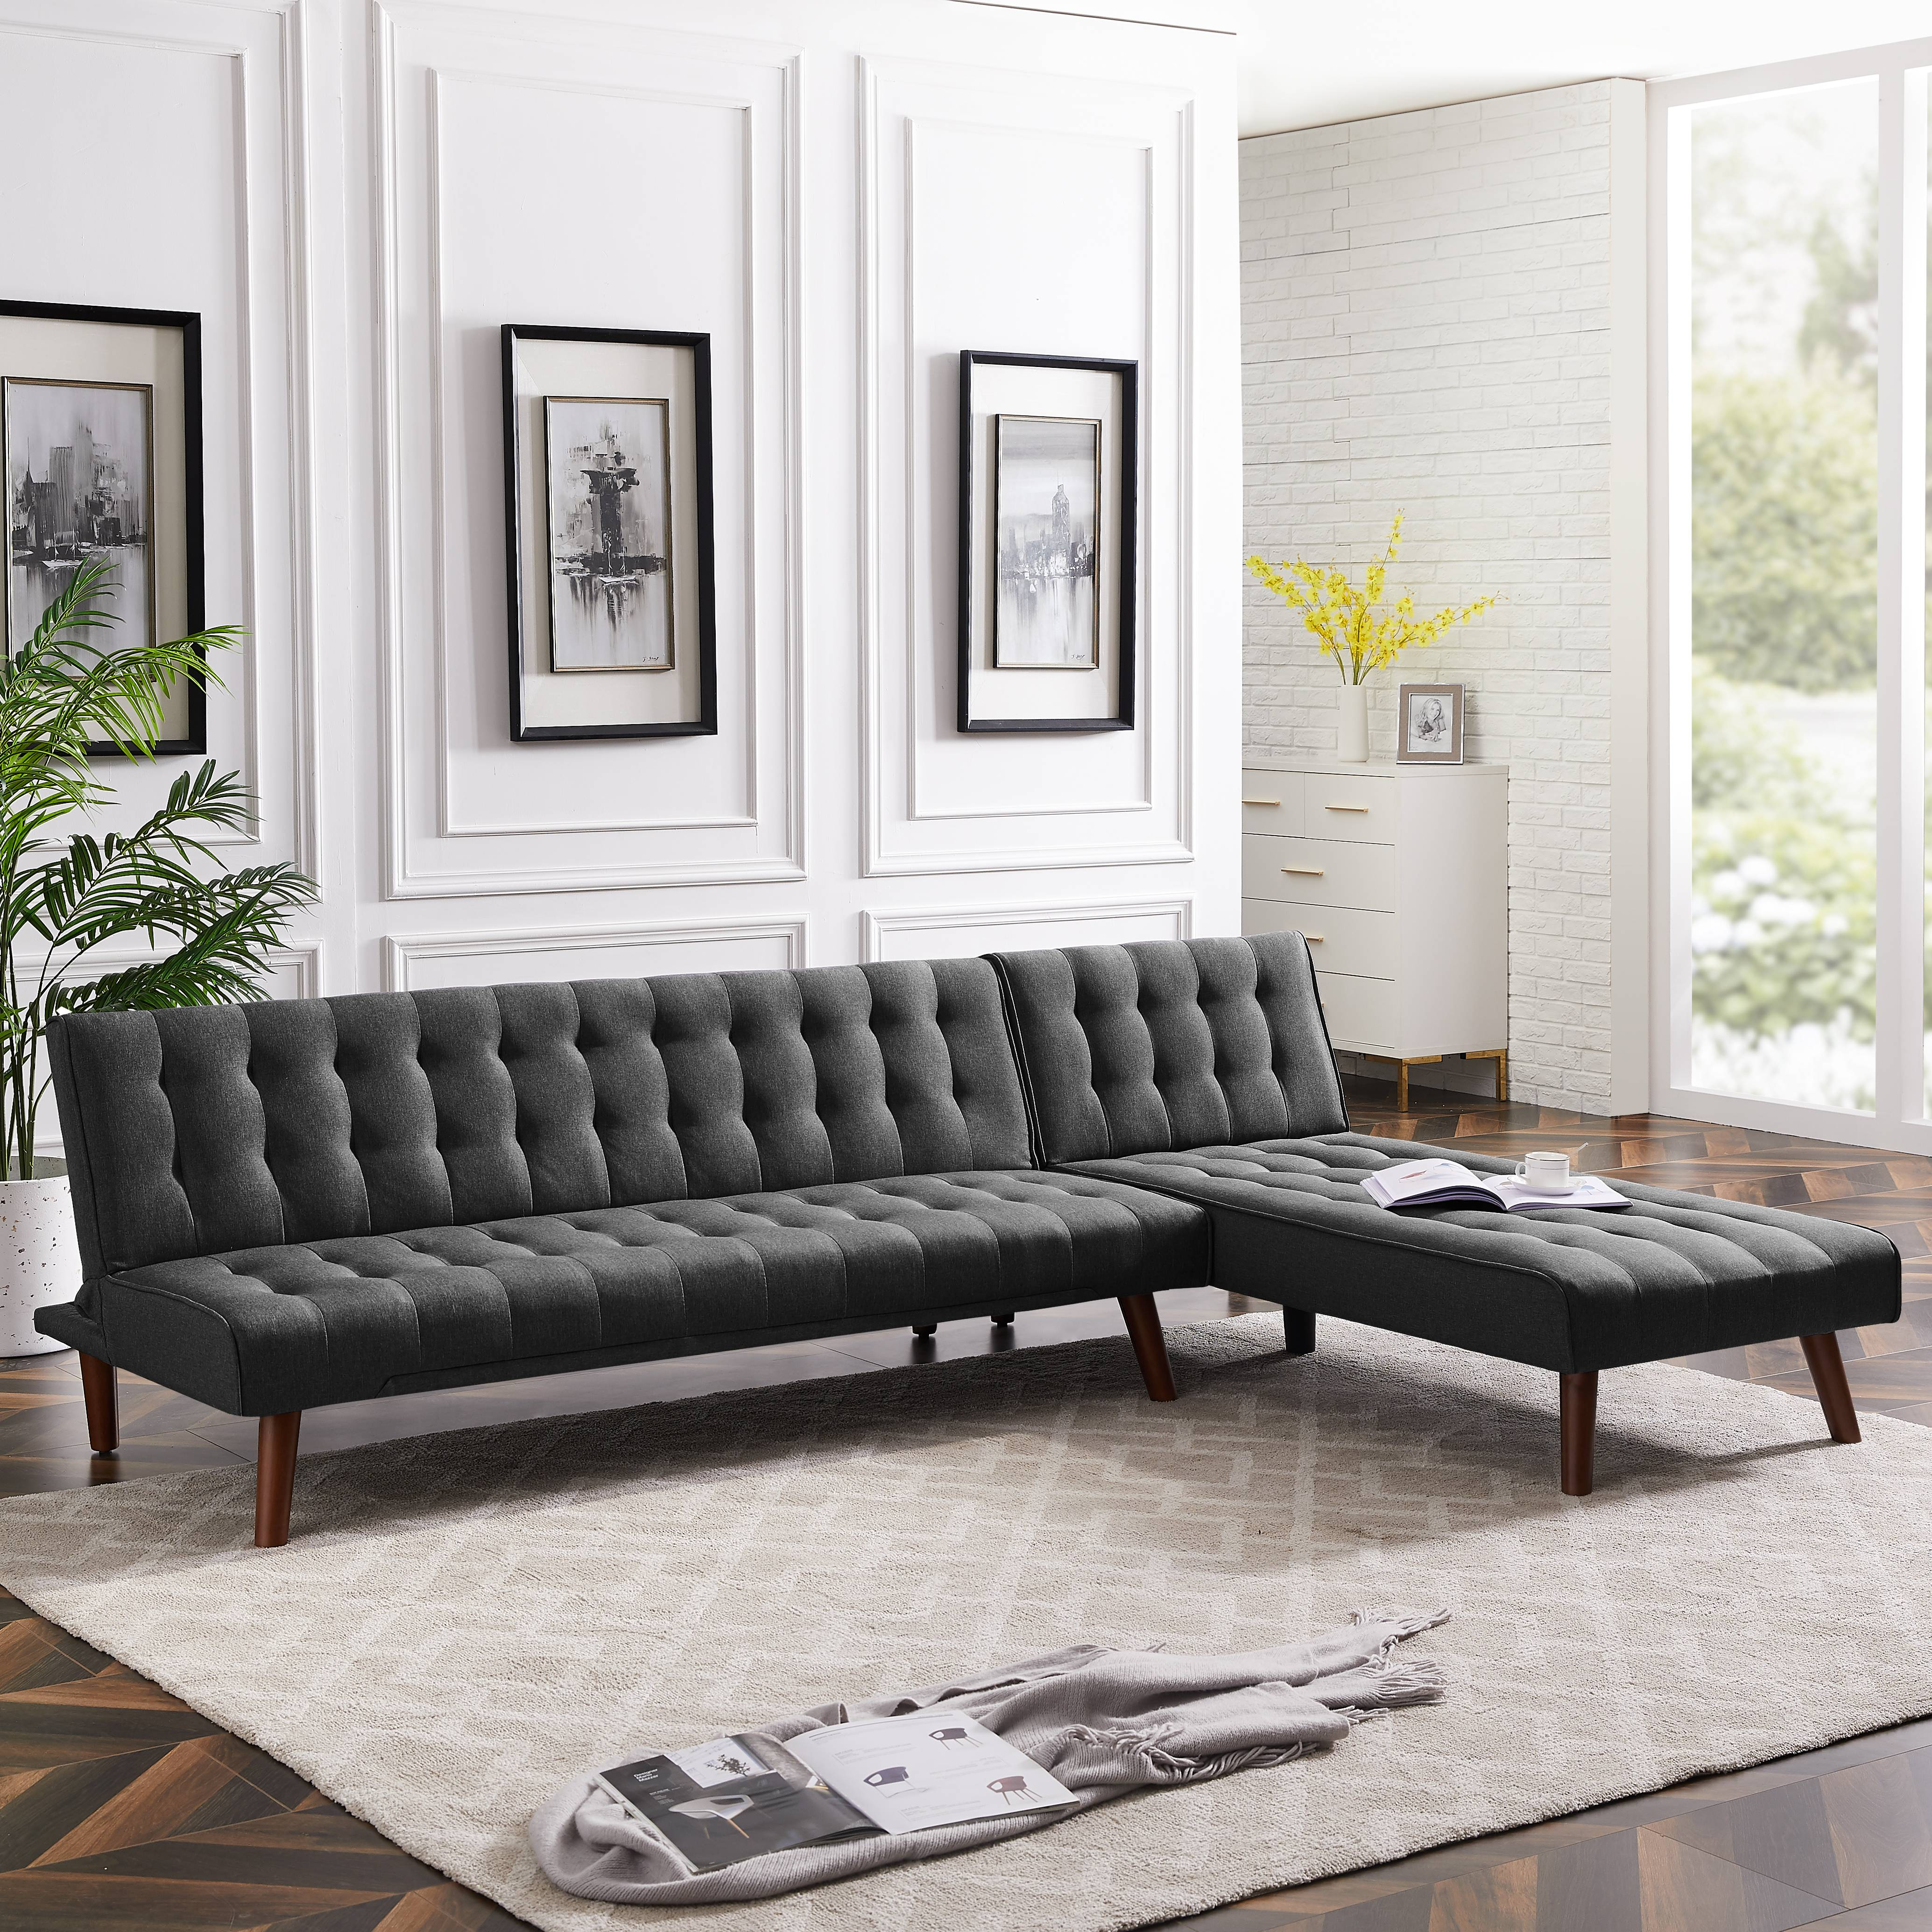 Picture of: Convertible Sofa Bed Sofa Bed Sleeper Reversible Sectional Sofa Sleeper Recliner Sofa Bed Set Home Use Multipurpose Sofa Bed Fabric Sectional Sofa For Living Room Bedroom Balcony Black Y0627 Walmart Com